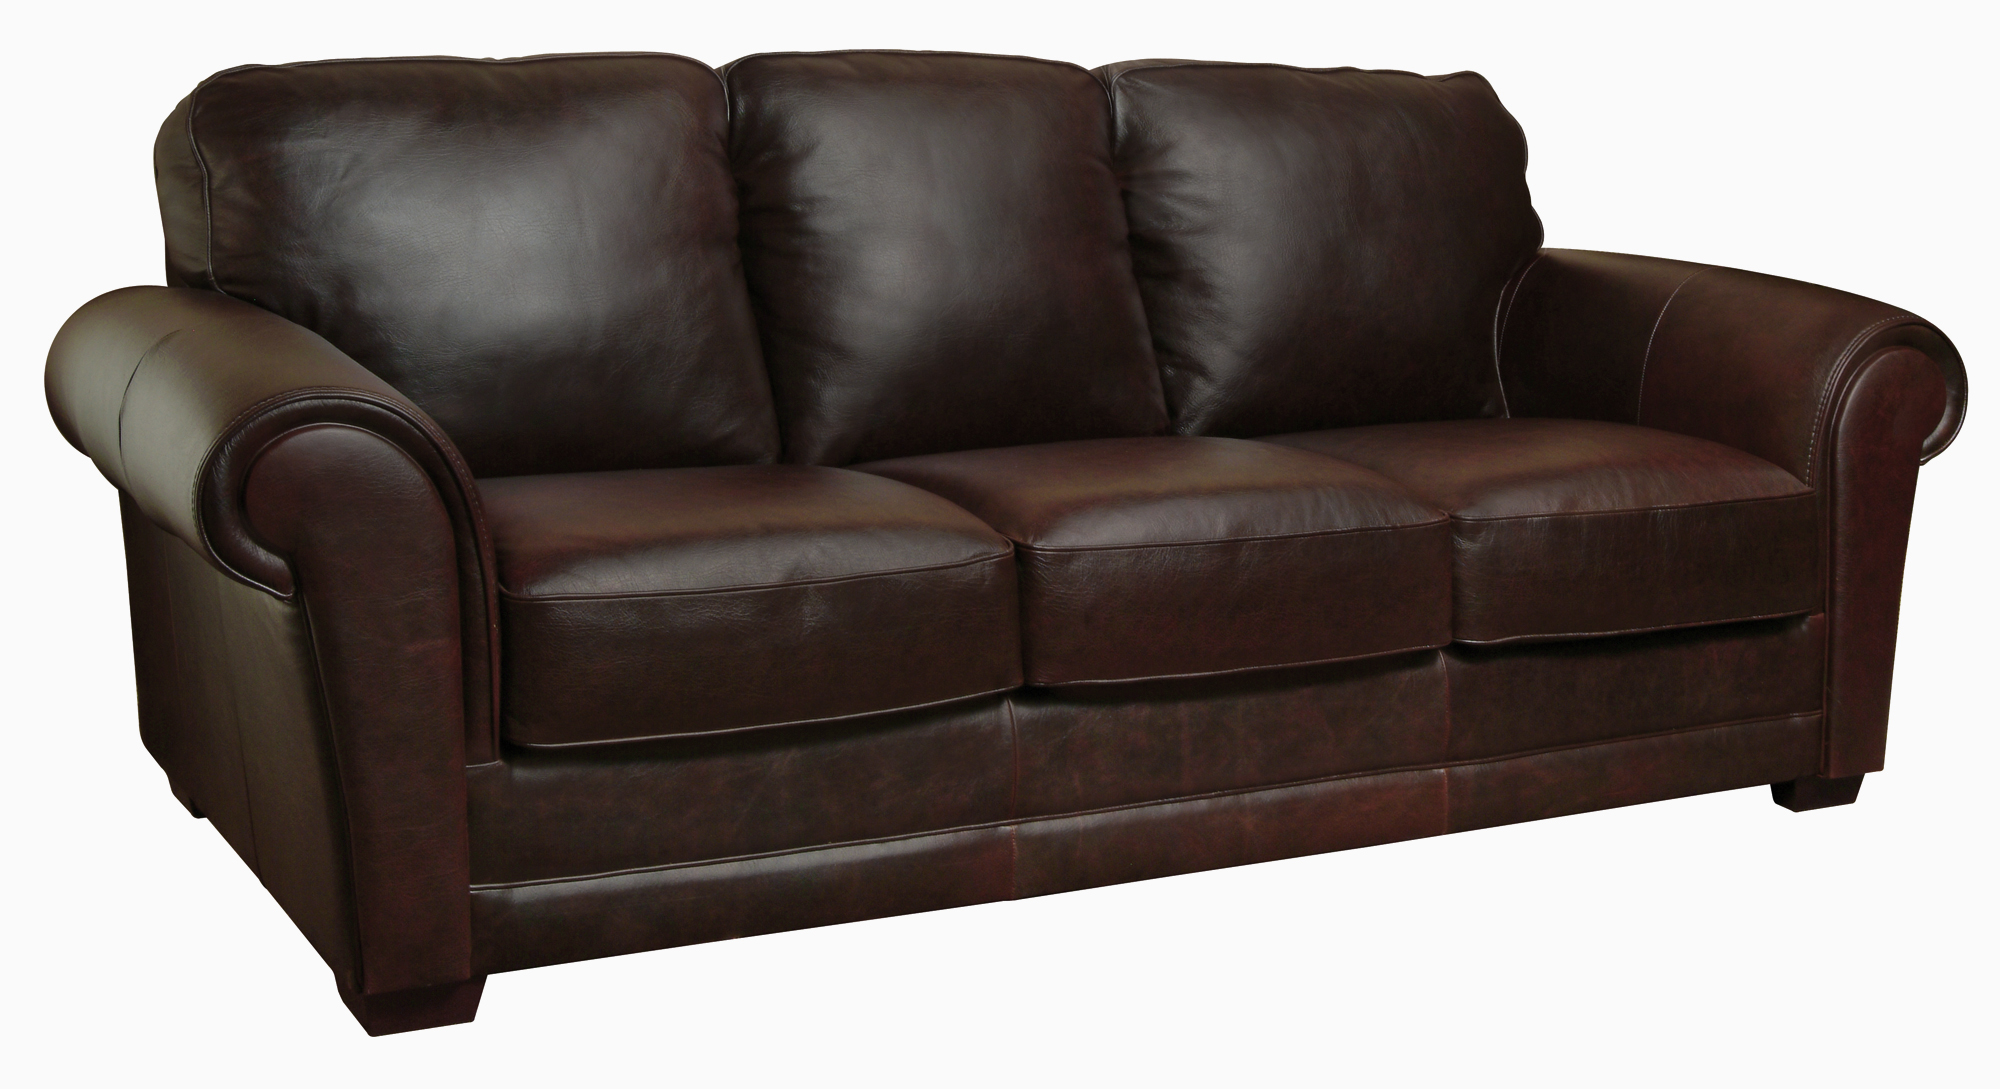 New luke leather mark italian leather distressed for Leather furniture